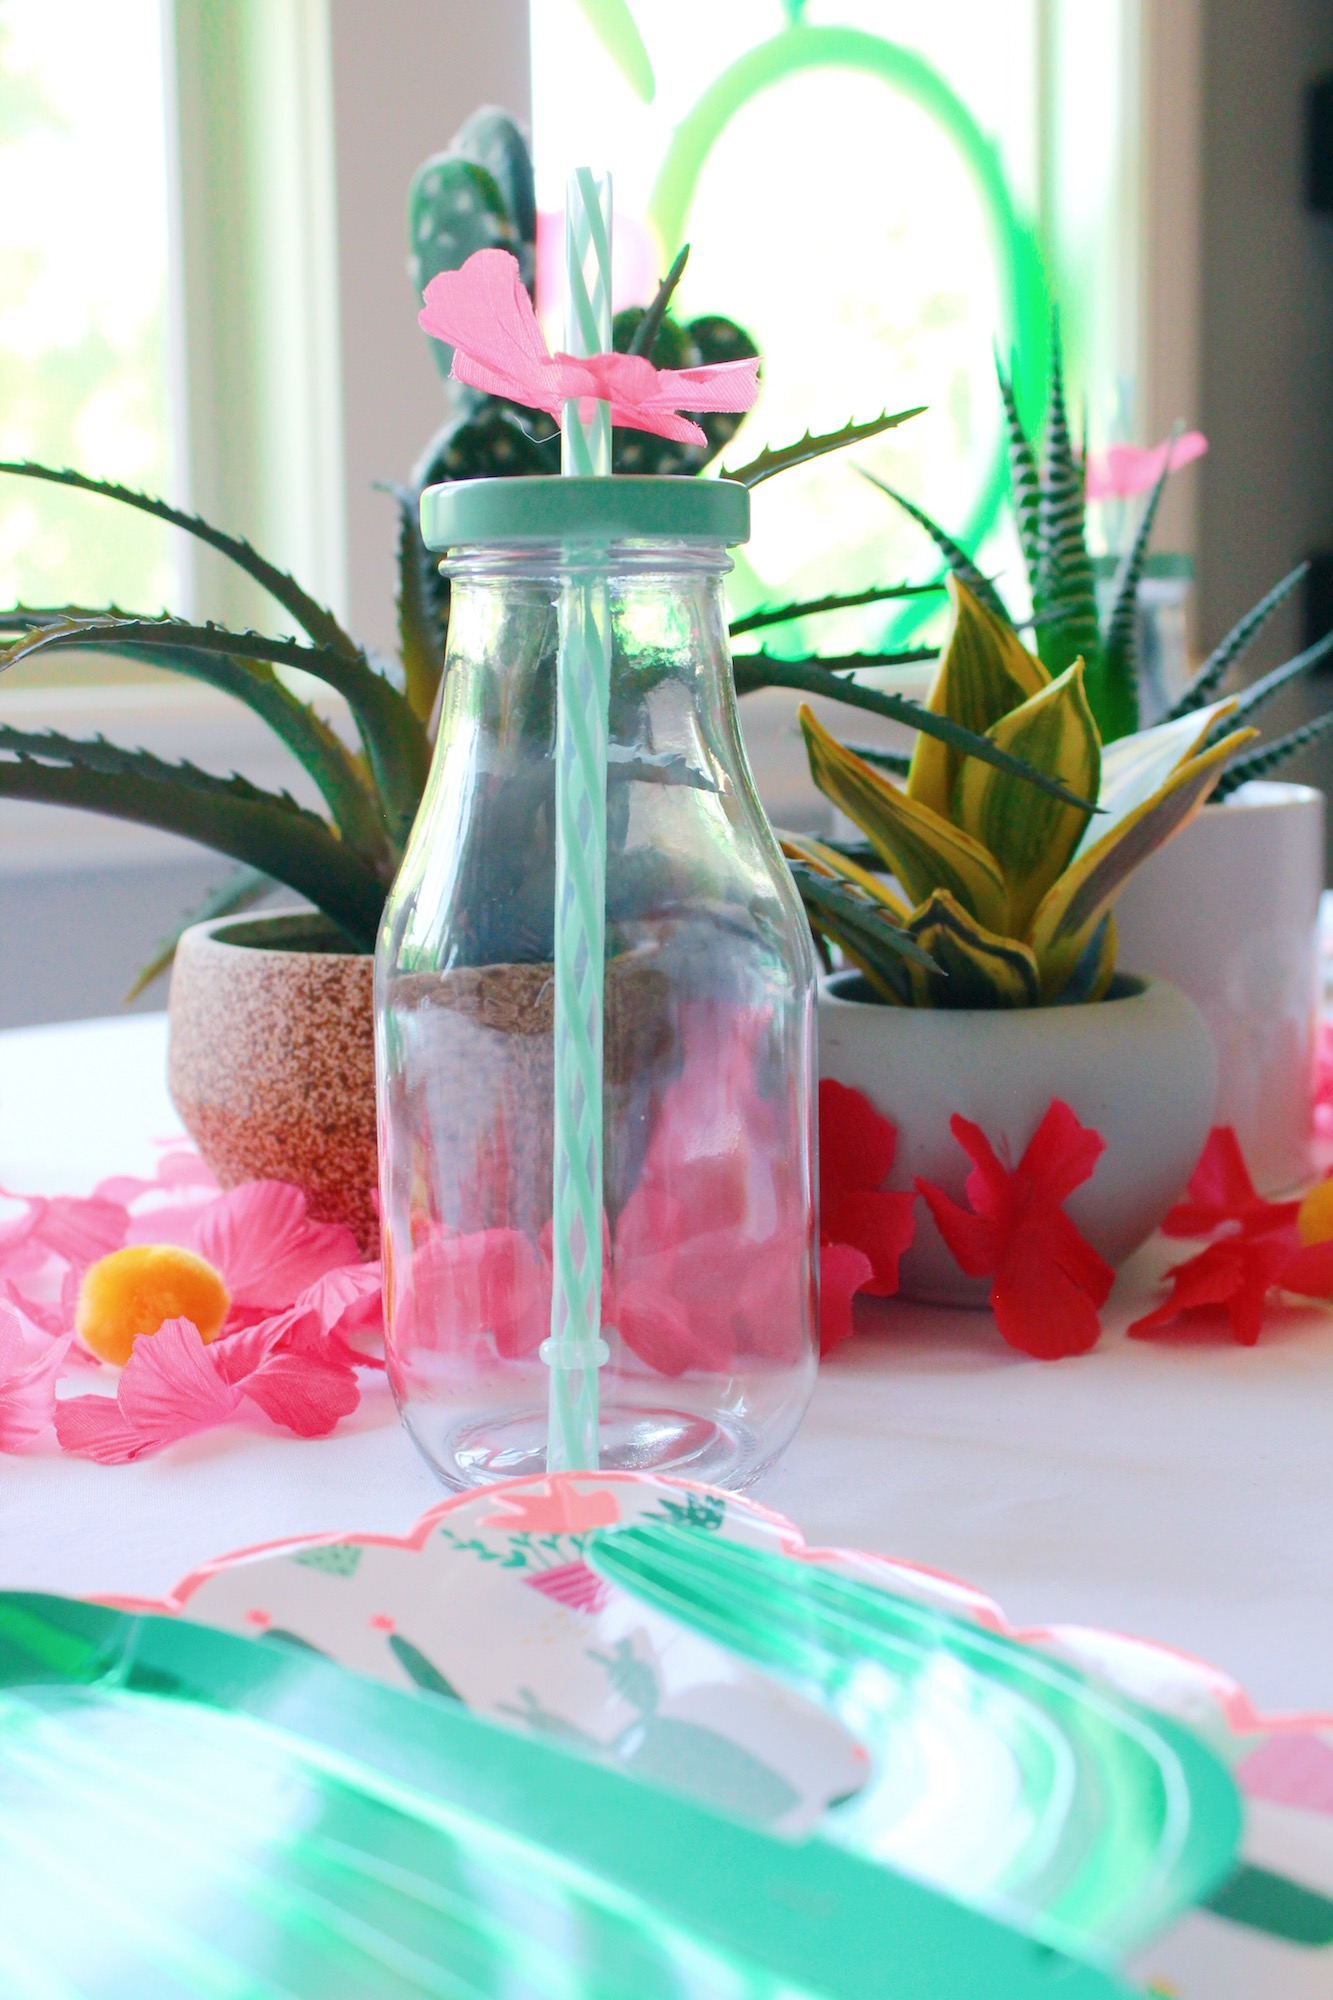 Cactus Desert Party_Drinkware_Straw Blossom_Design Organize Party.JPG